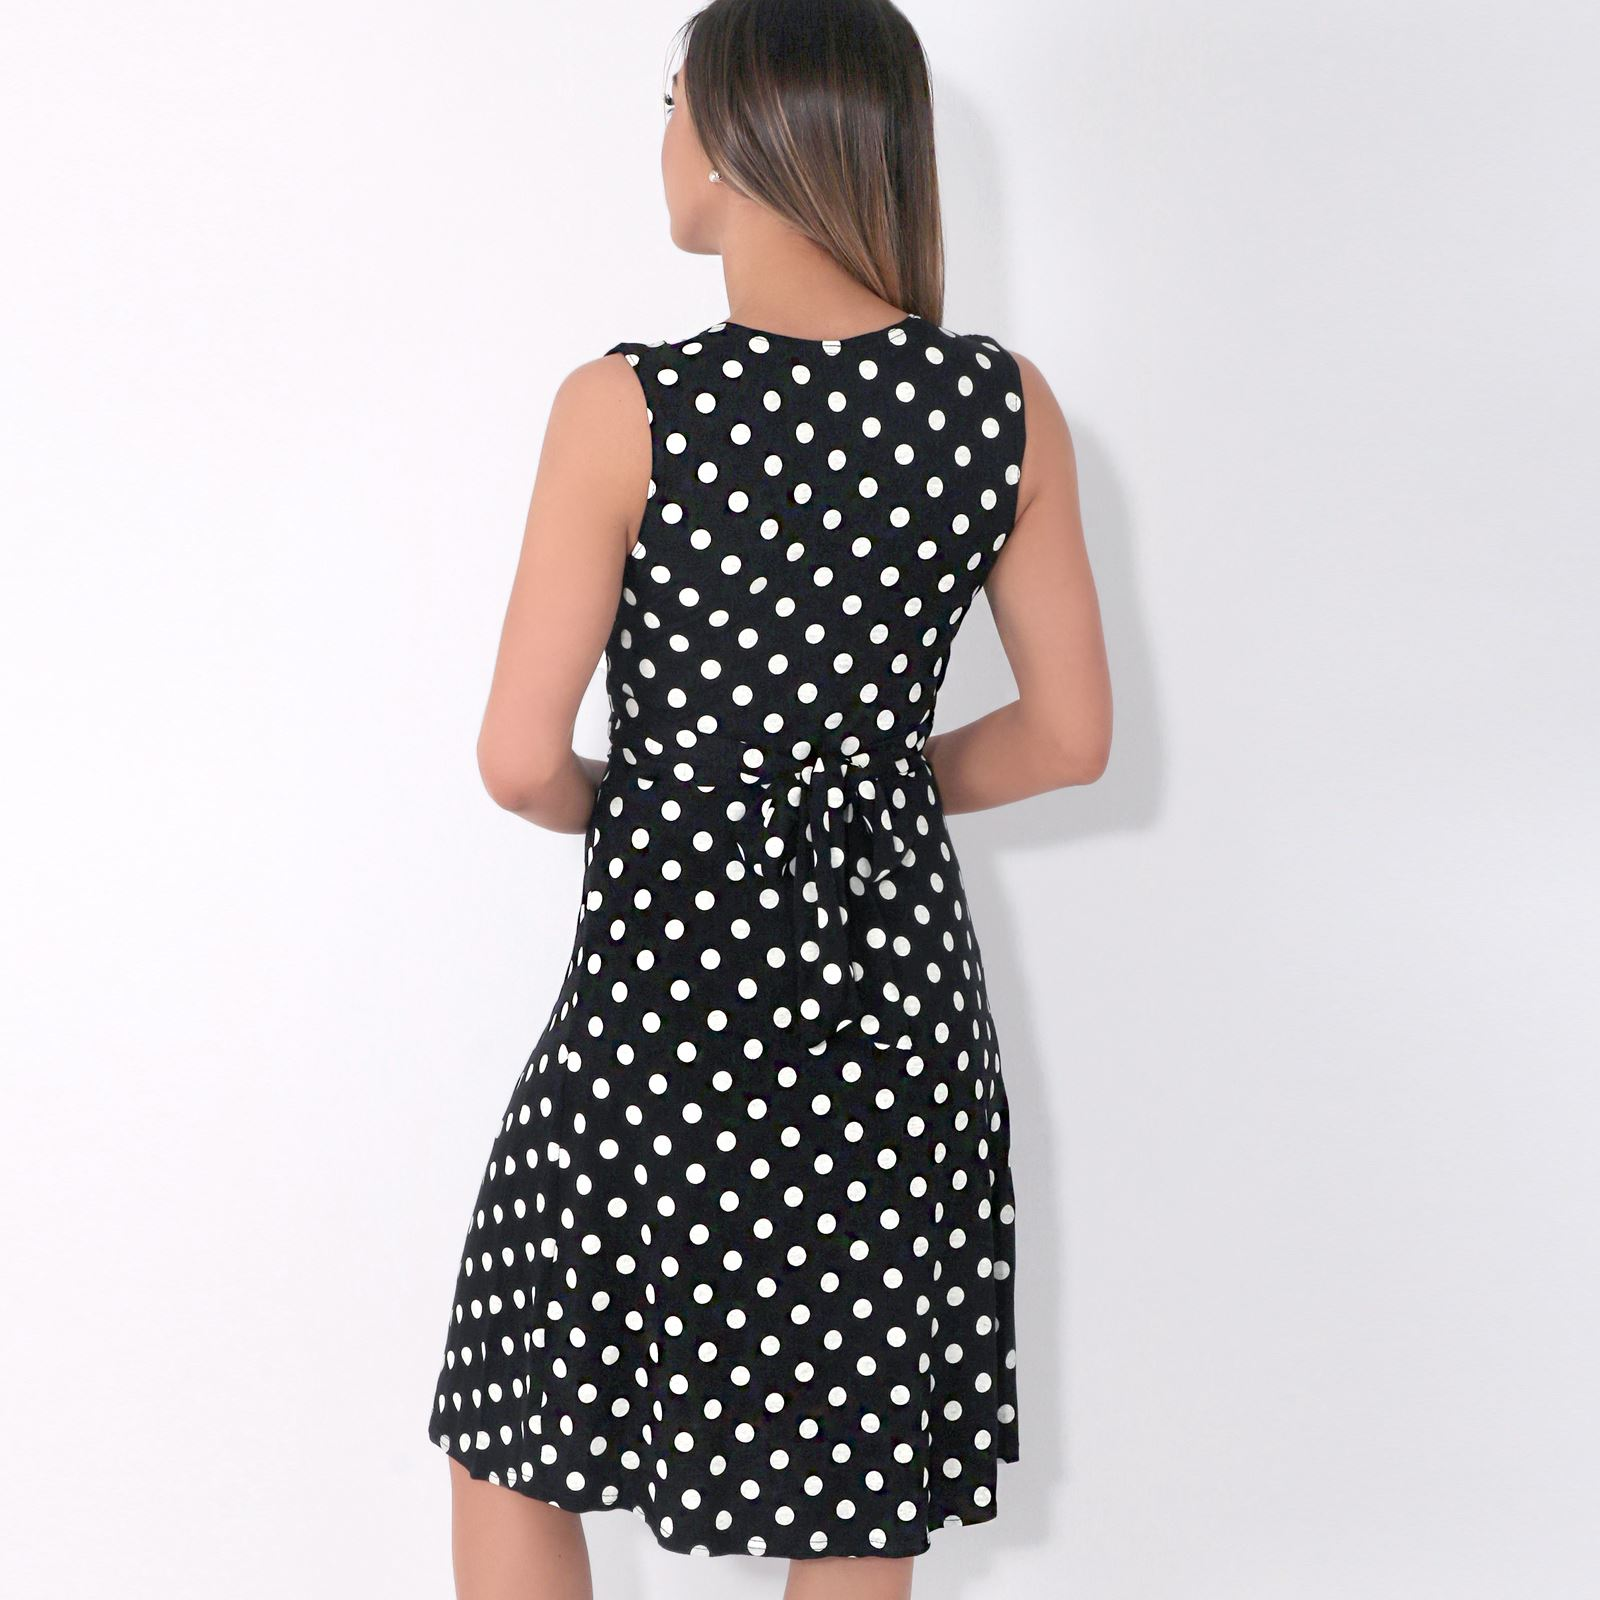 Womens-Dot-Print-Dress-Retro-Vintage-Pleated-Mini-V-Neck-Wrap-Top-Swing-Party thumbnail 4